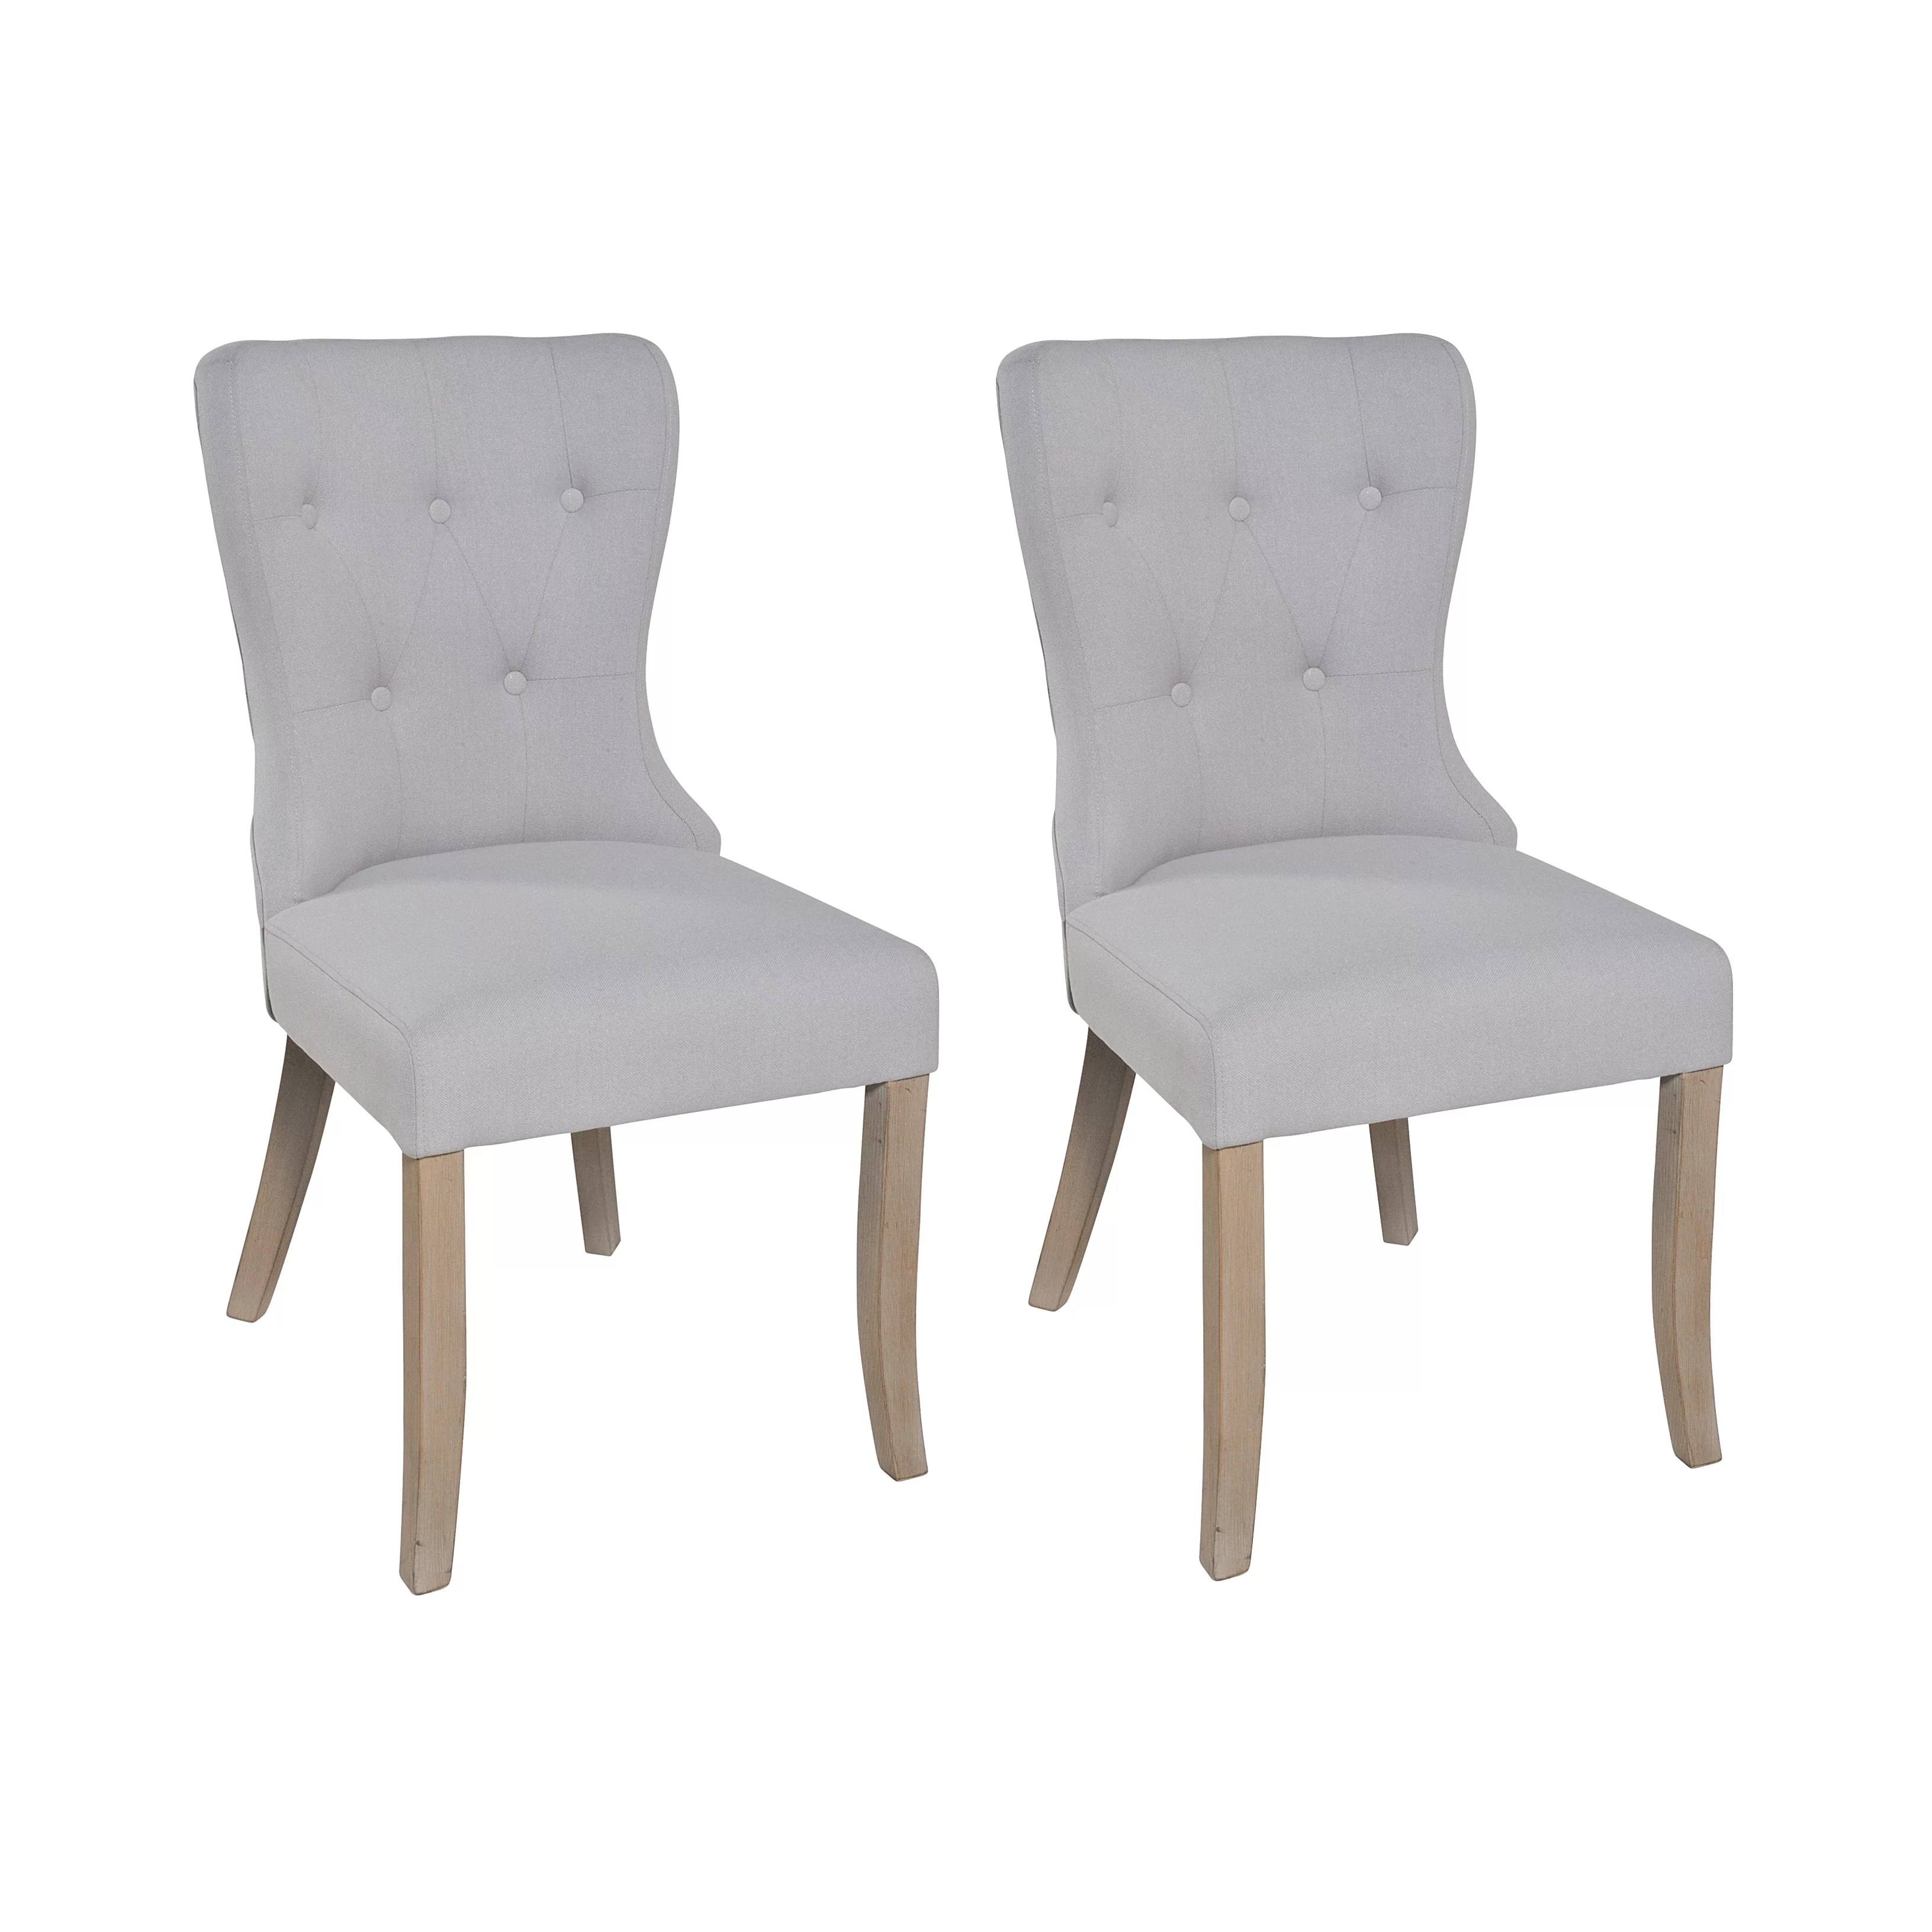 Studded Dining Chairs Wheatland Dining Chair